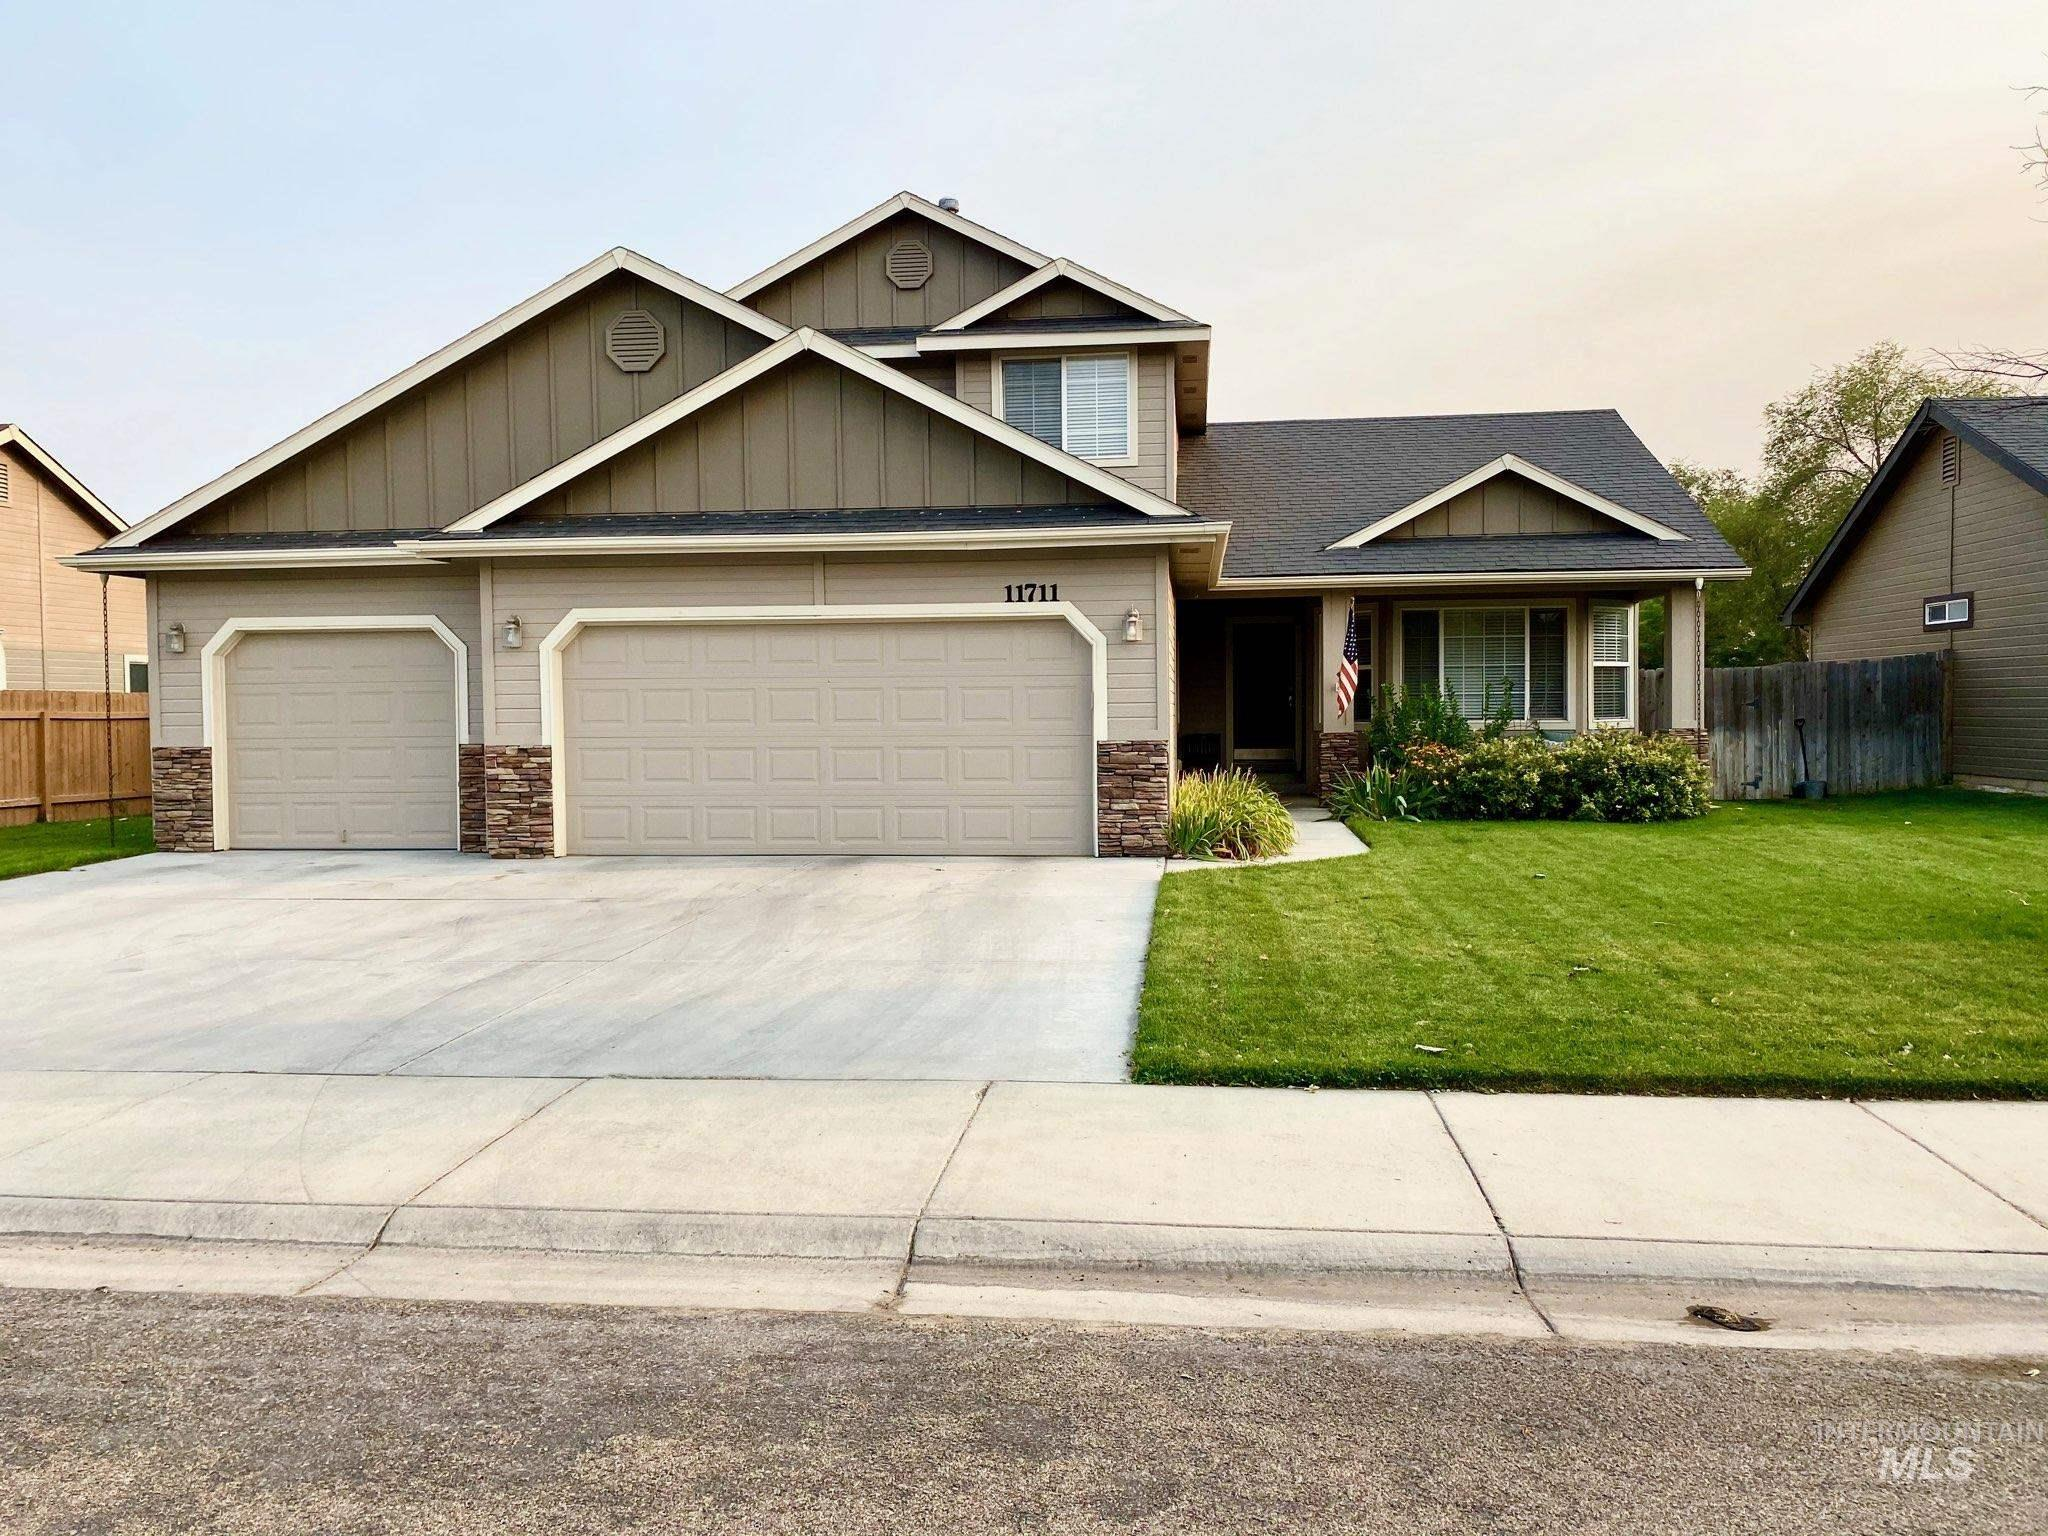 Photo for 11711 W Gambrell, Star, ID 83669 (MLS # 98780828)